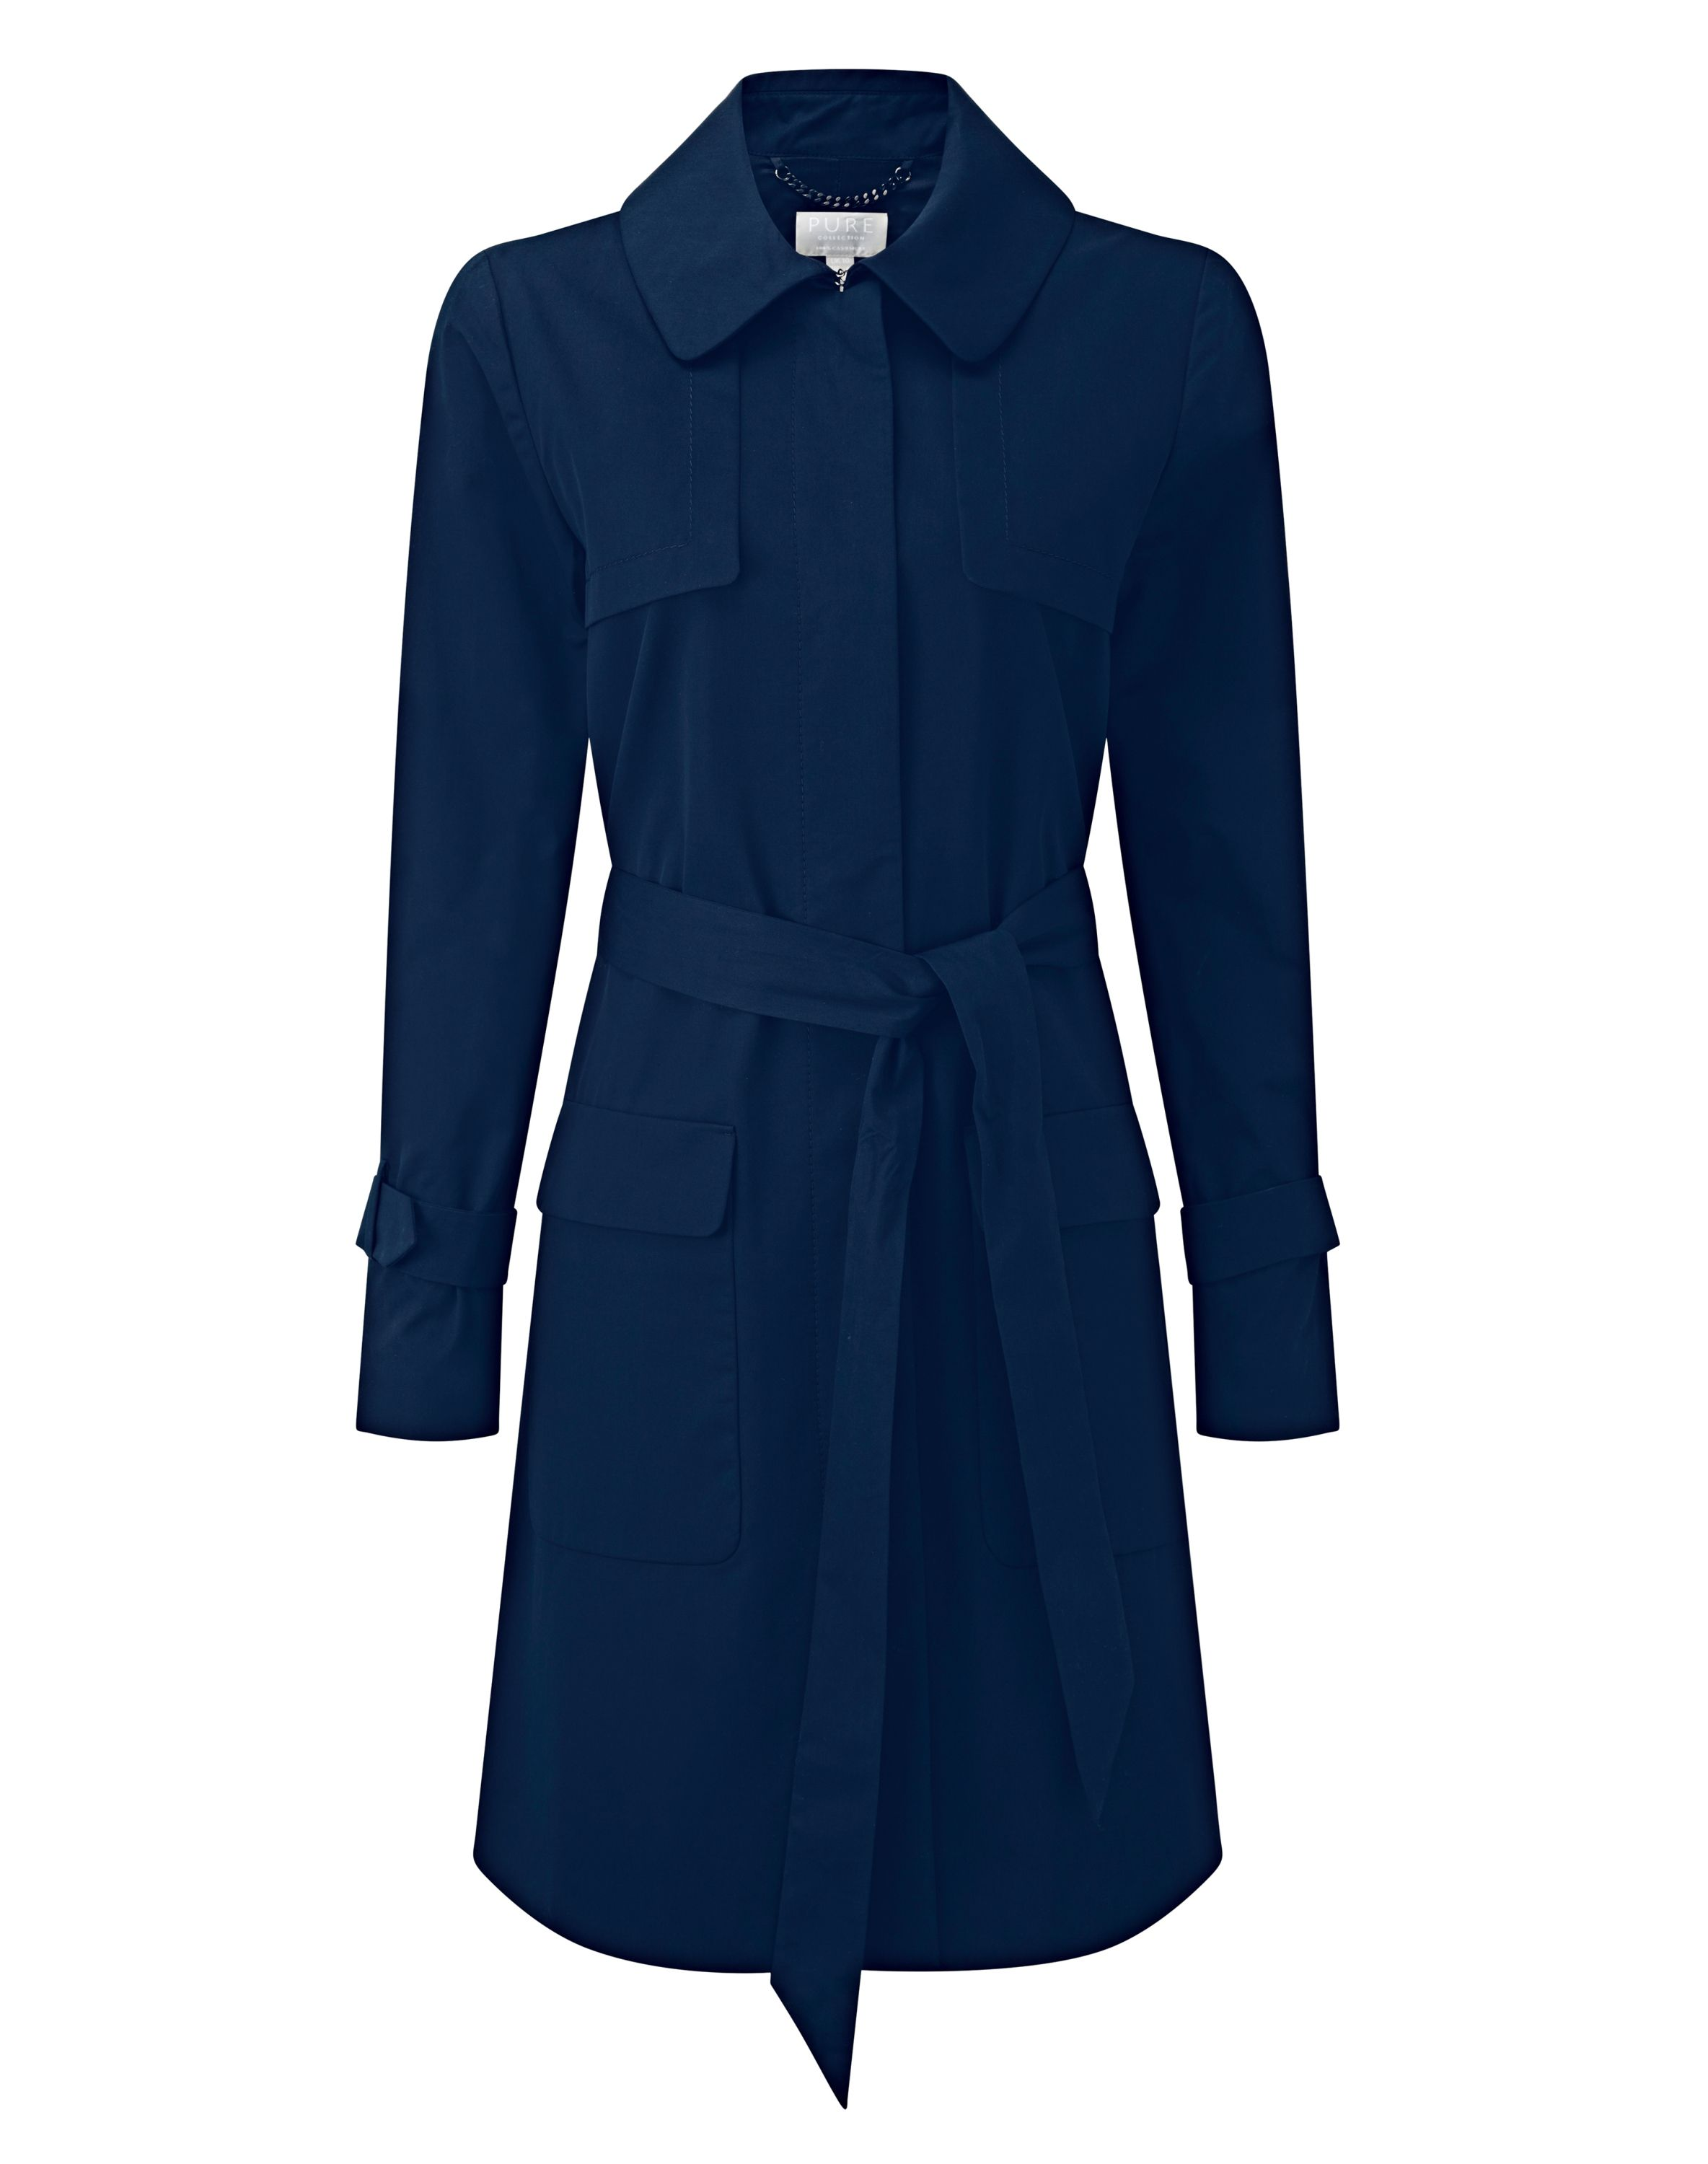 Nothing says sophistication like the trench, and the understated minimalism of this elegant new rework of a classic speaks volumes. The mid-length is...